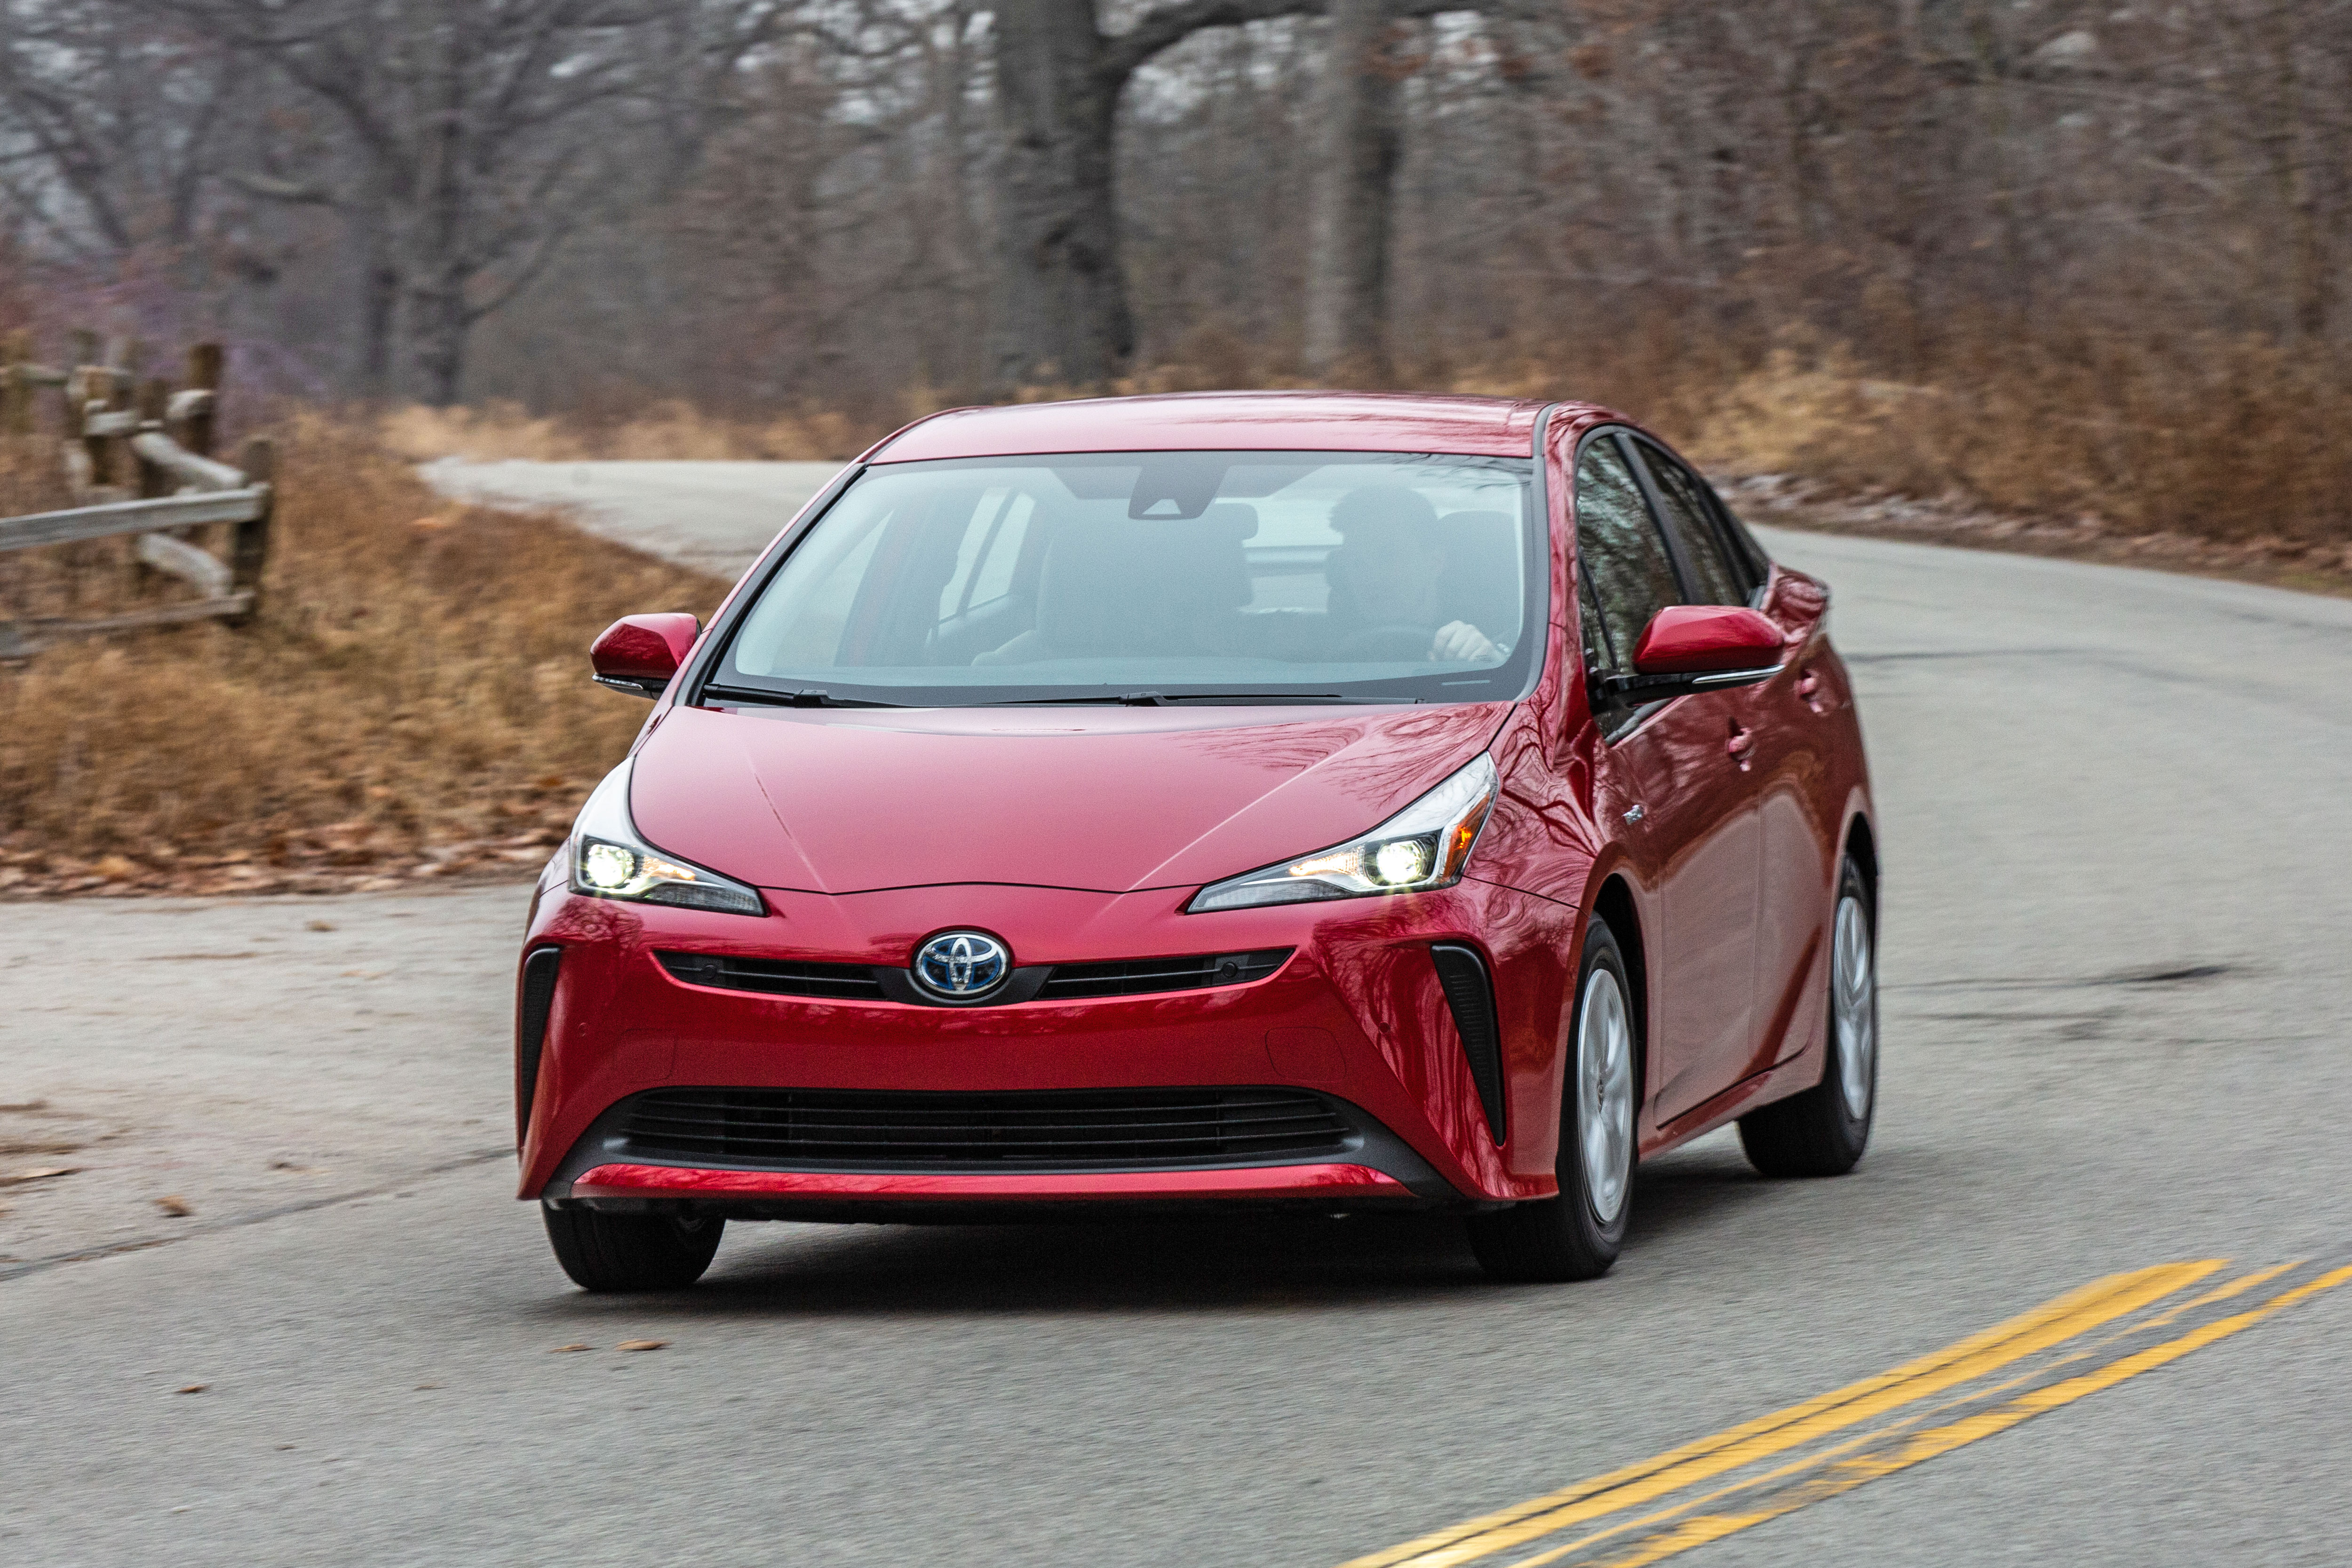 Toyota Prius Hybrid Battery Shares Auxiliary Tips For Collision Repairers We Asked If Any Rules Like This Existed Plug In And Fully Electric Vehicles Hybrids Those Unfamiliar With The Technology